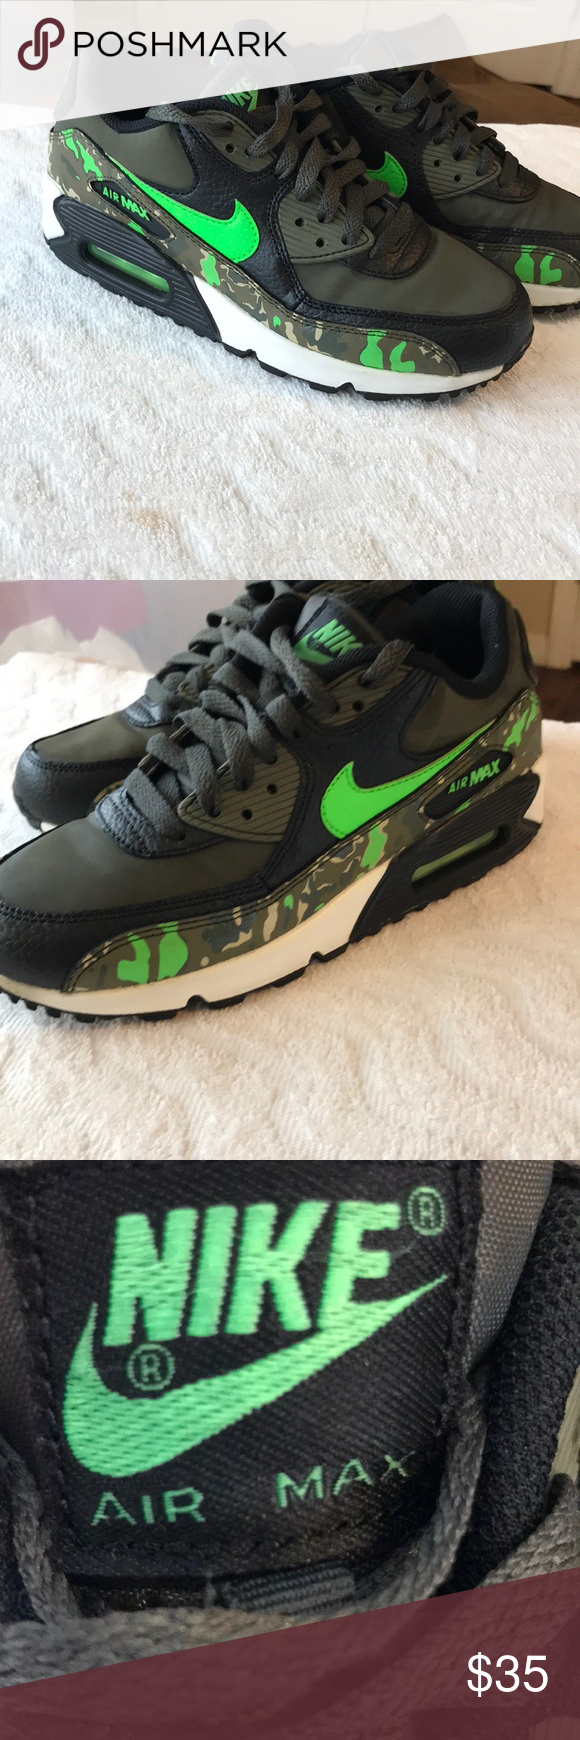 Nike Air Max 90 size 4.5 youth/men's 6